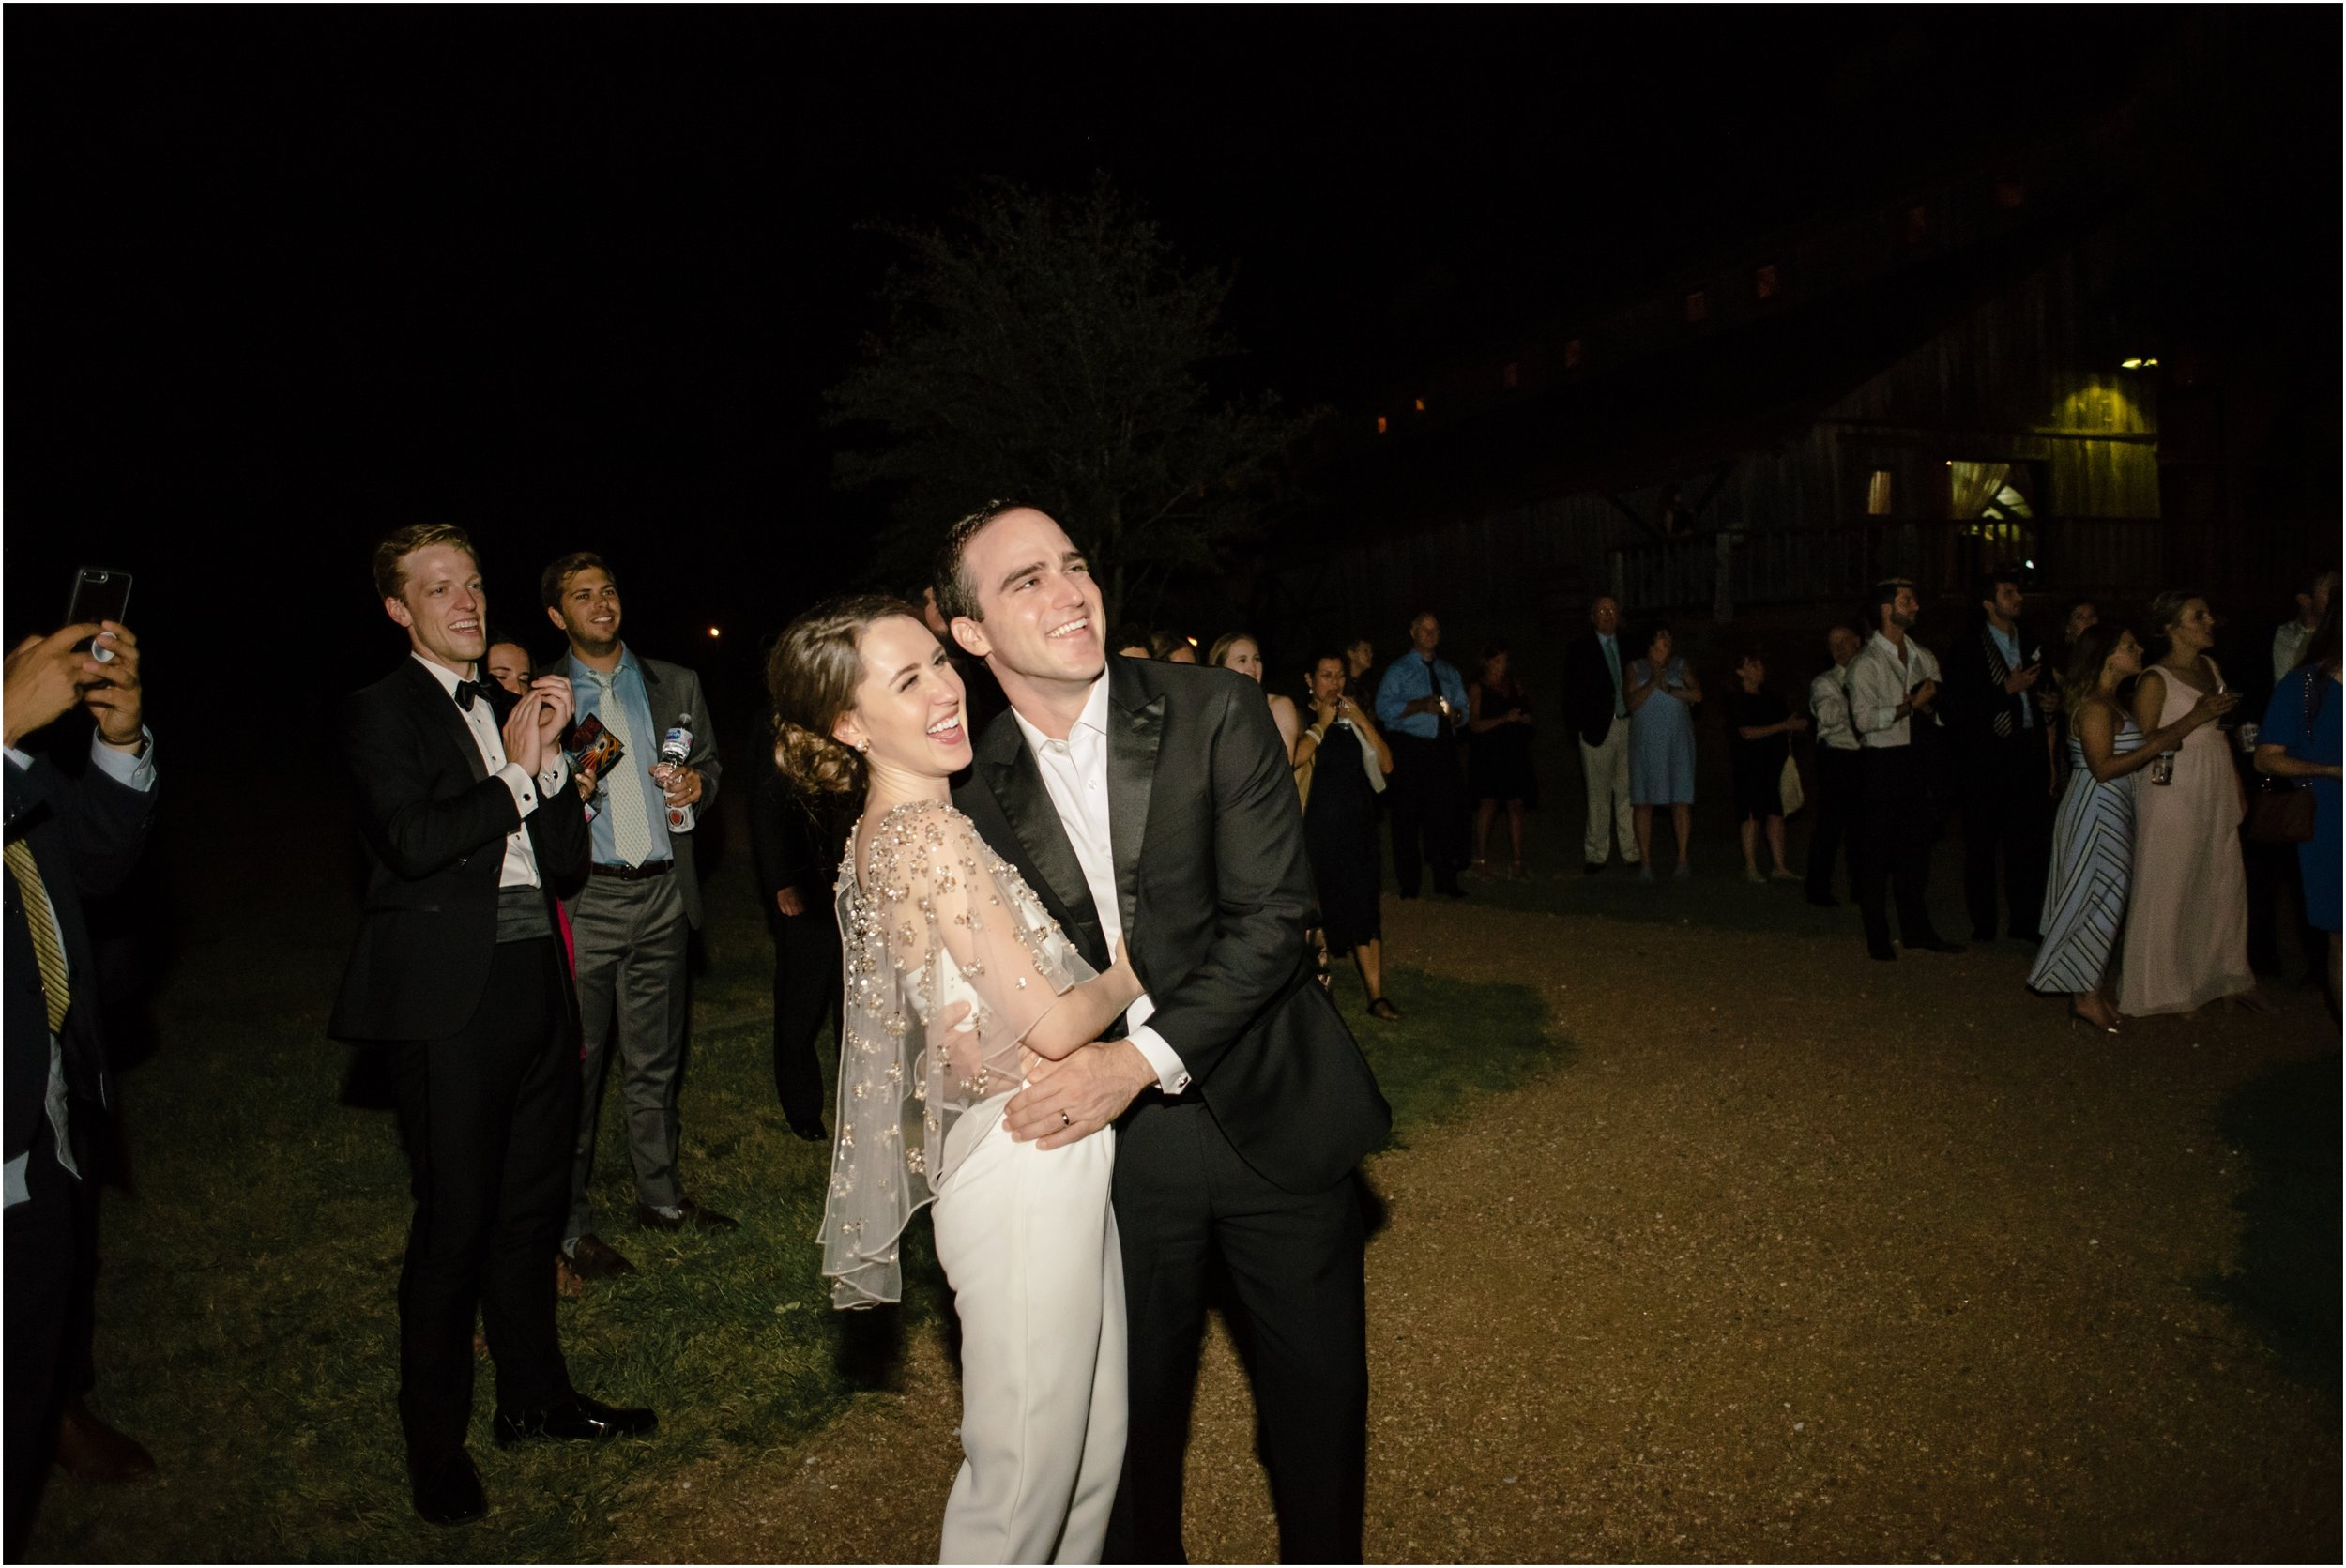 dallasweddingphotographer_fortworthweddingphotographer_texasweddingphotographer_mattandjulieweddings_whiterocklakewedding_KayleighClay_0057.jpg